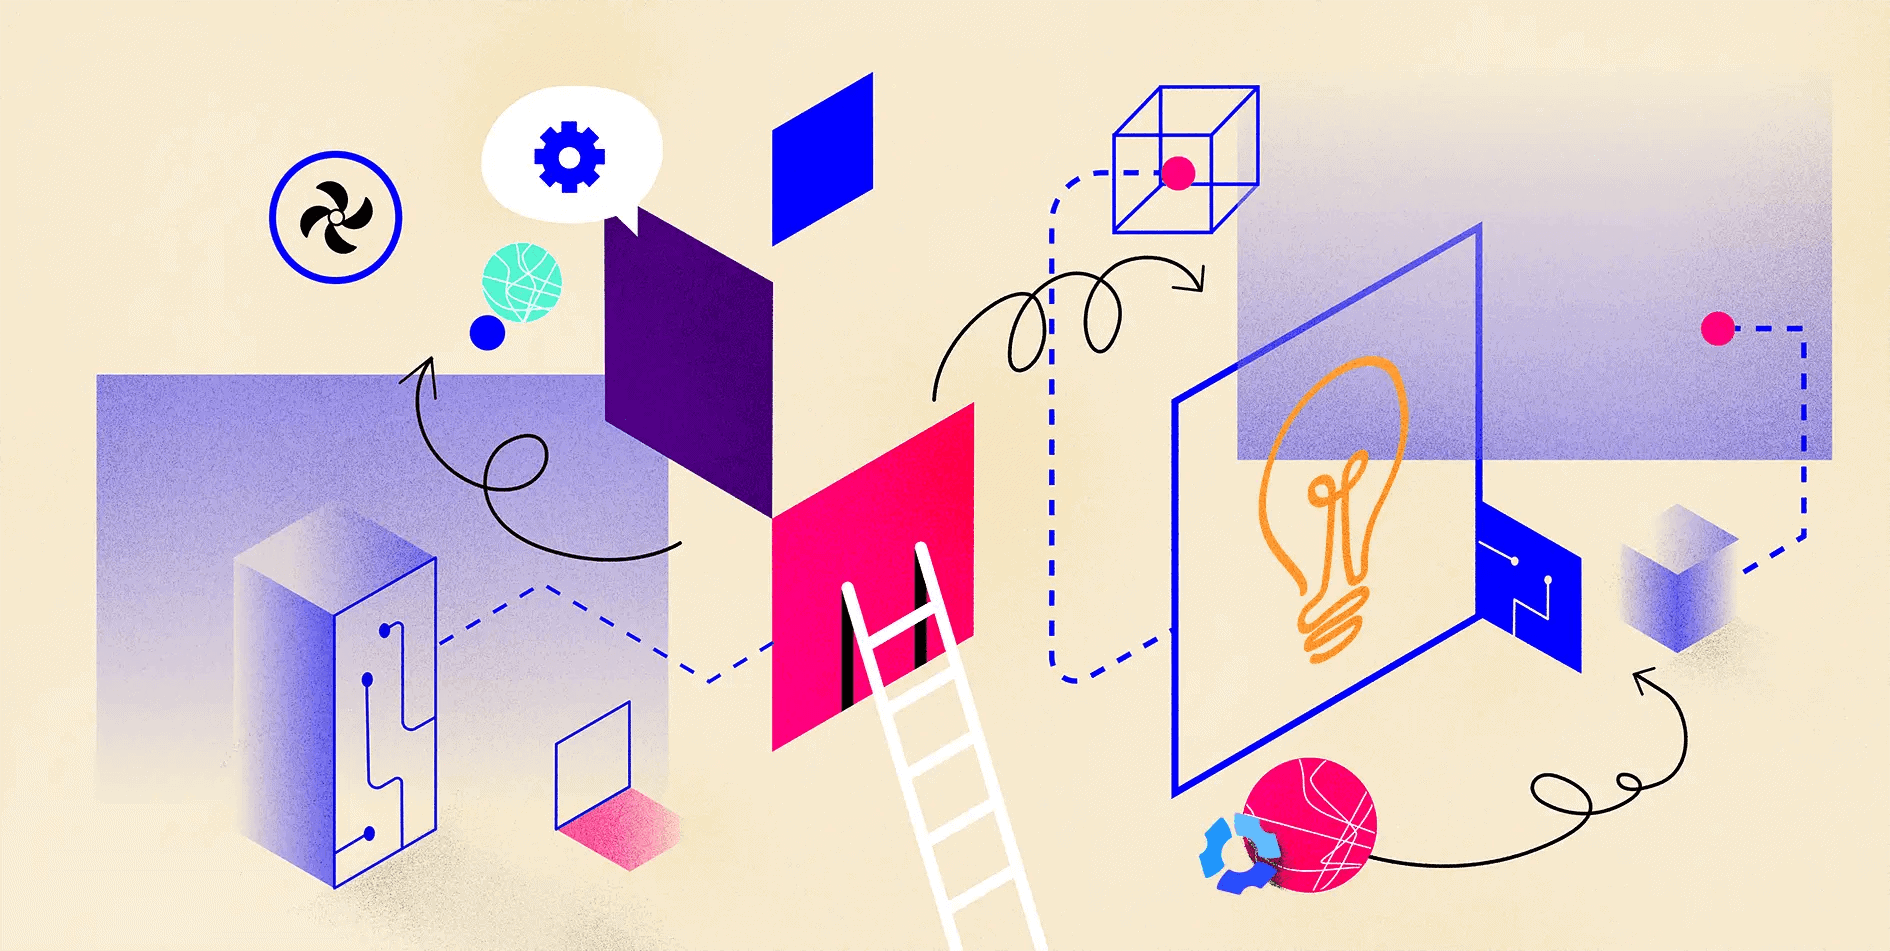 The Top Engineering Trends of 2019 You Should Know